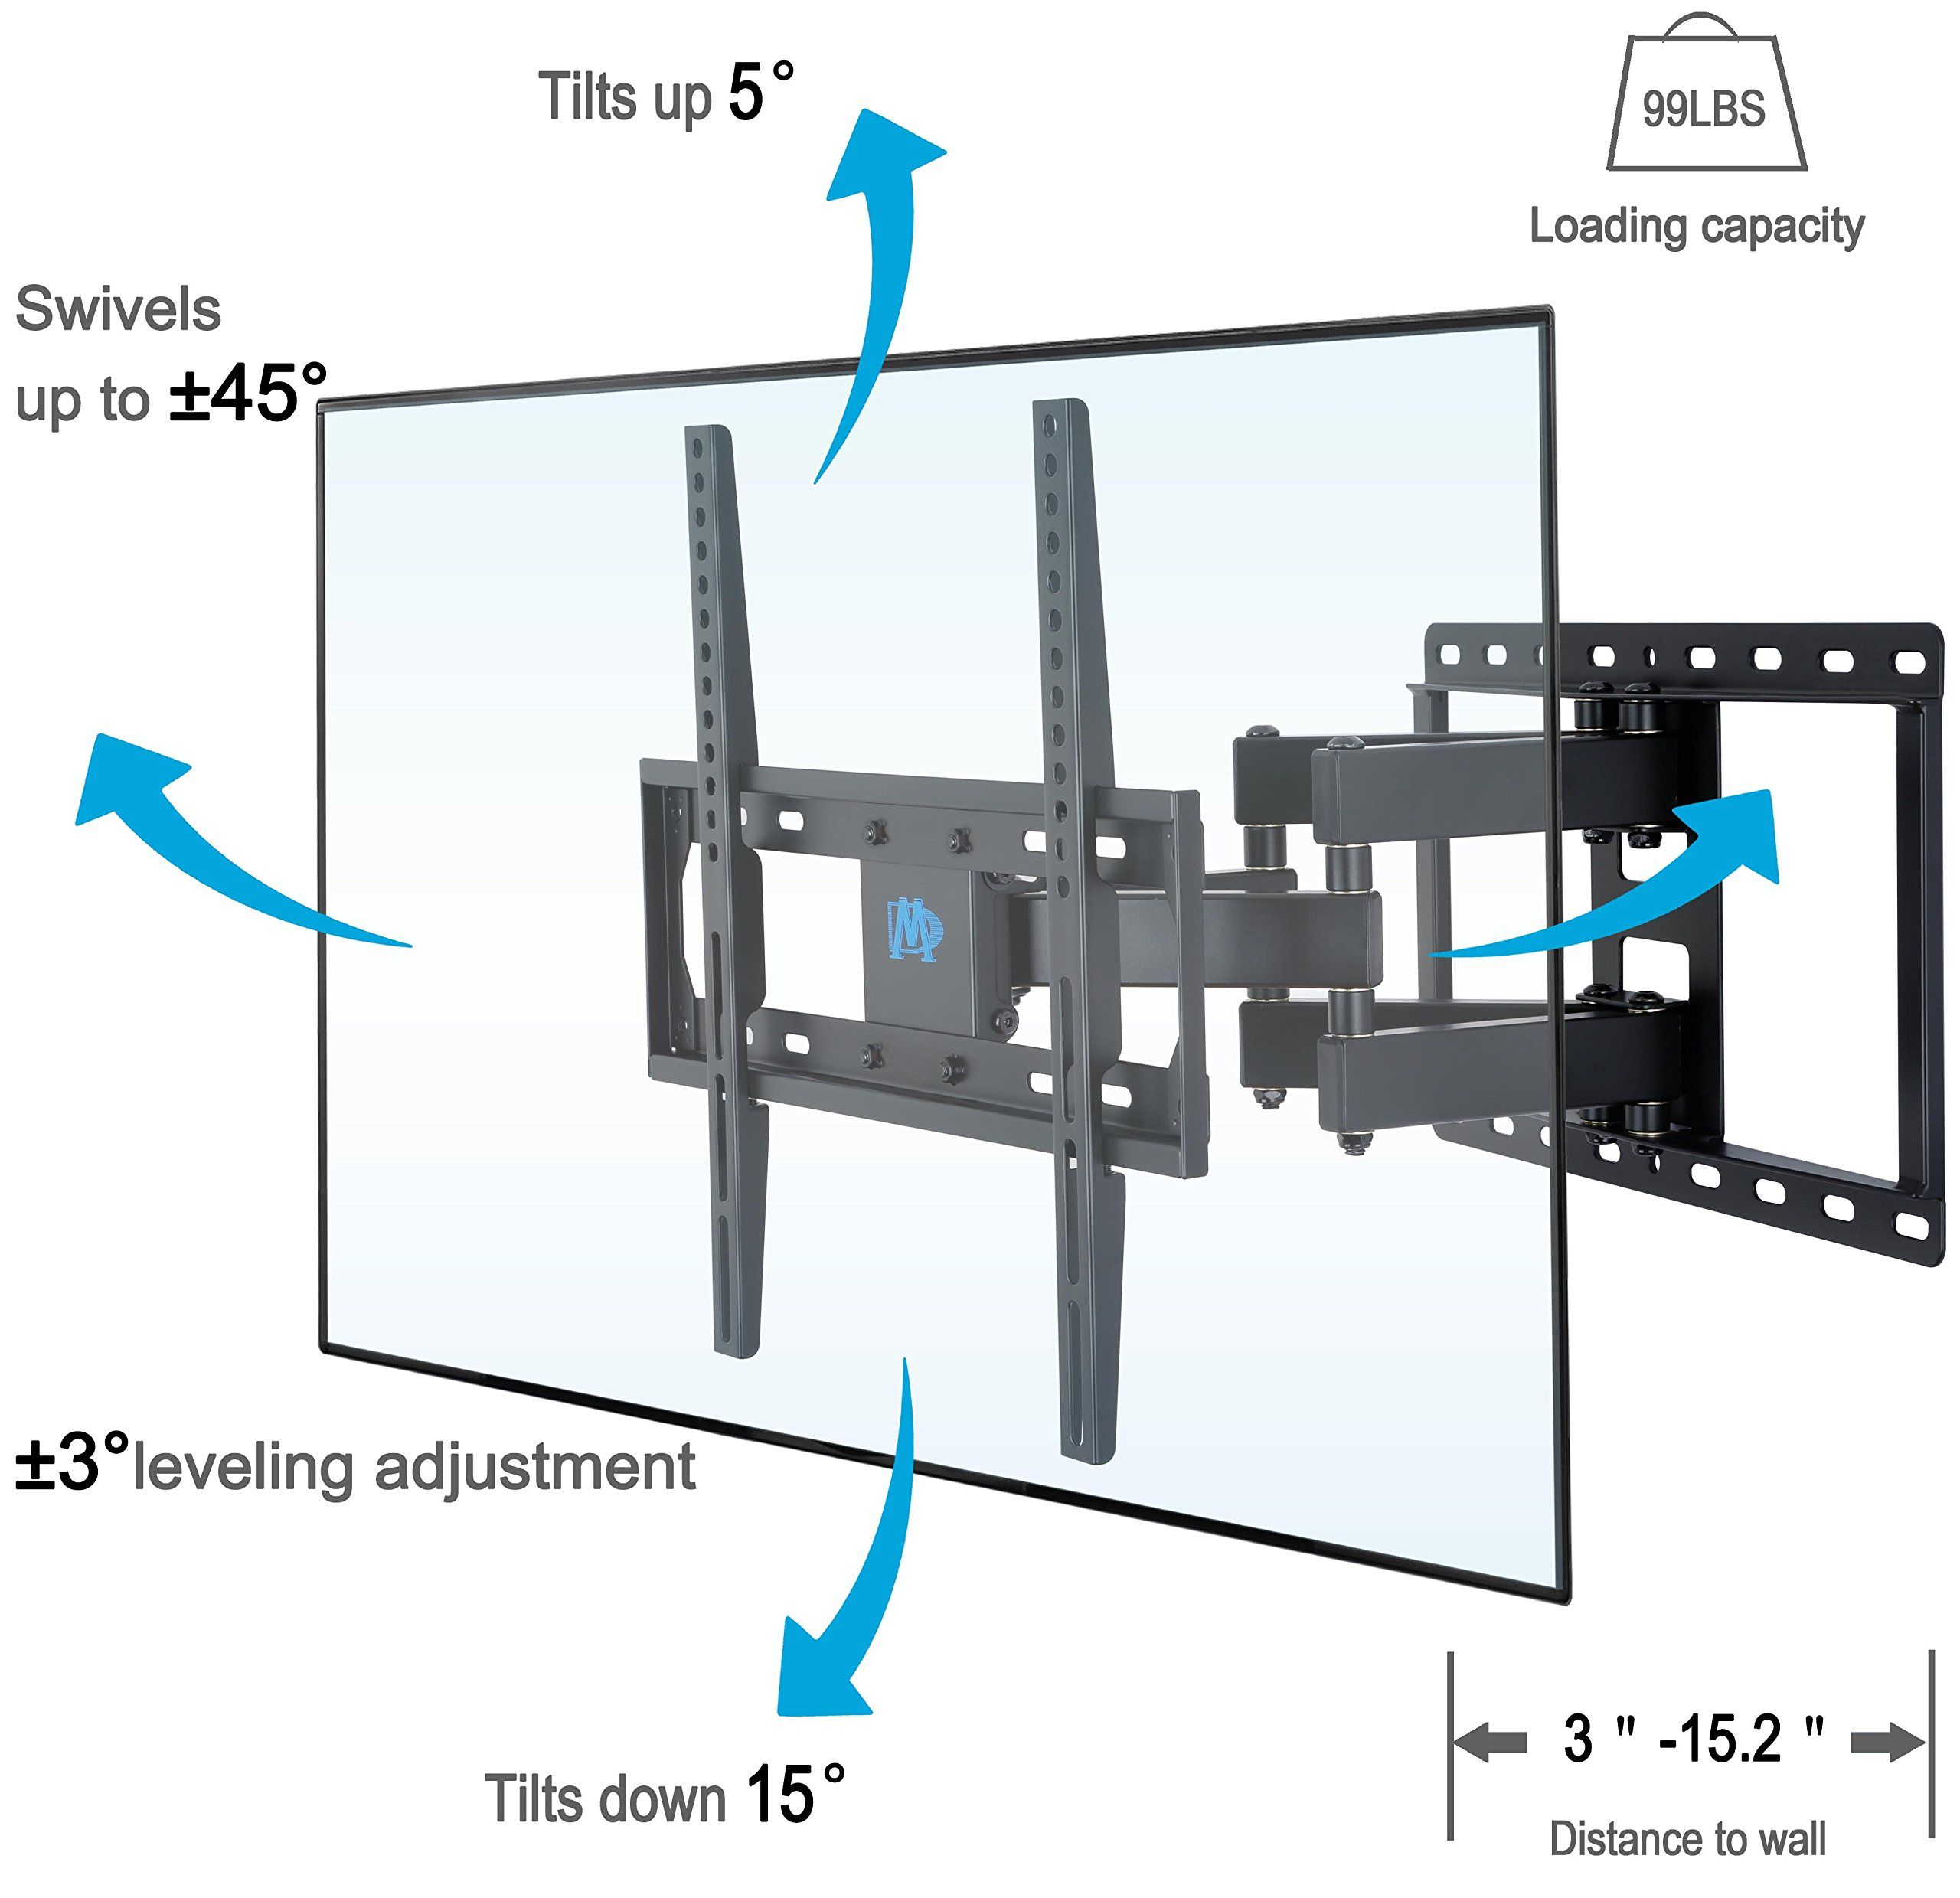 Mounting Dream Md2380 Tv Wall Mount Bracket For Most 2655 Inch Led Lcd Oled And Plasma Flat Screen Tv With Full Motio Wall Mounted Tv Tv Wall Diy Tv Wall Mount